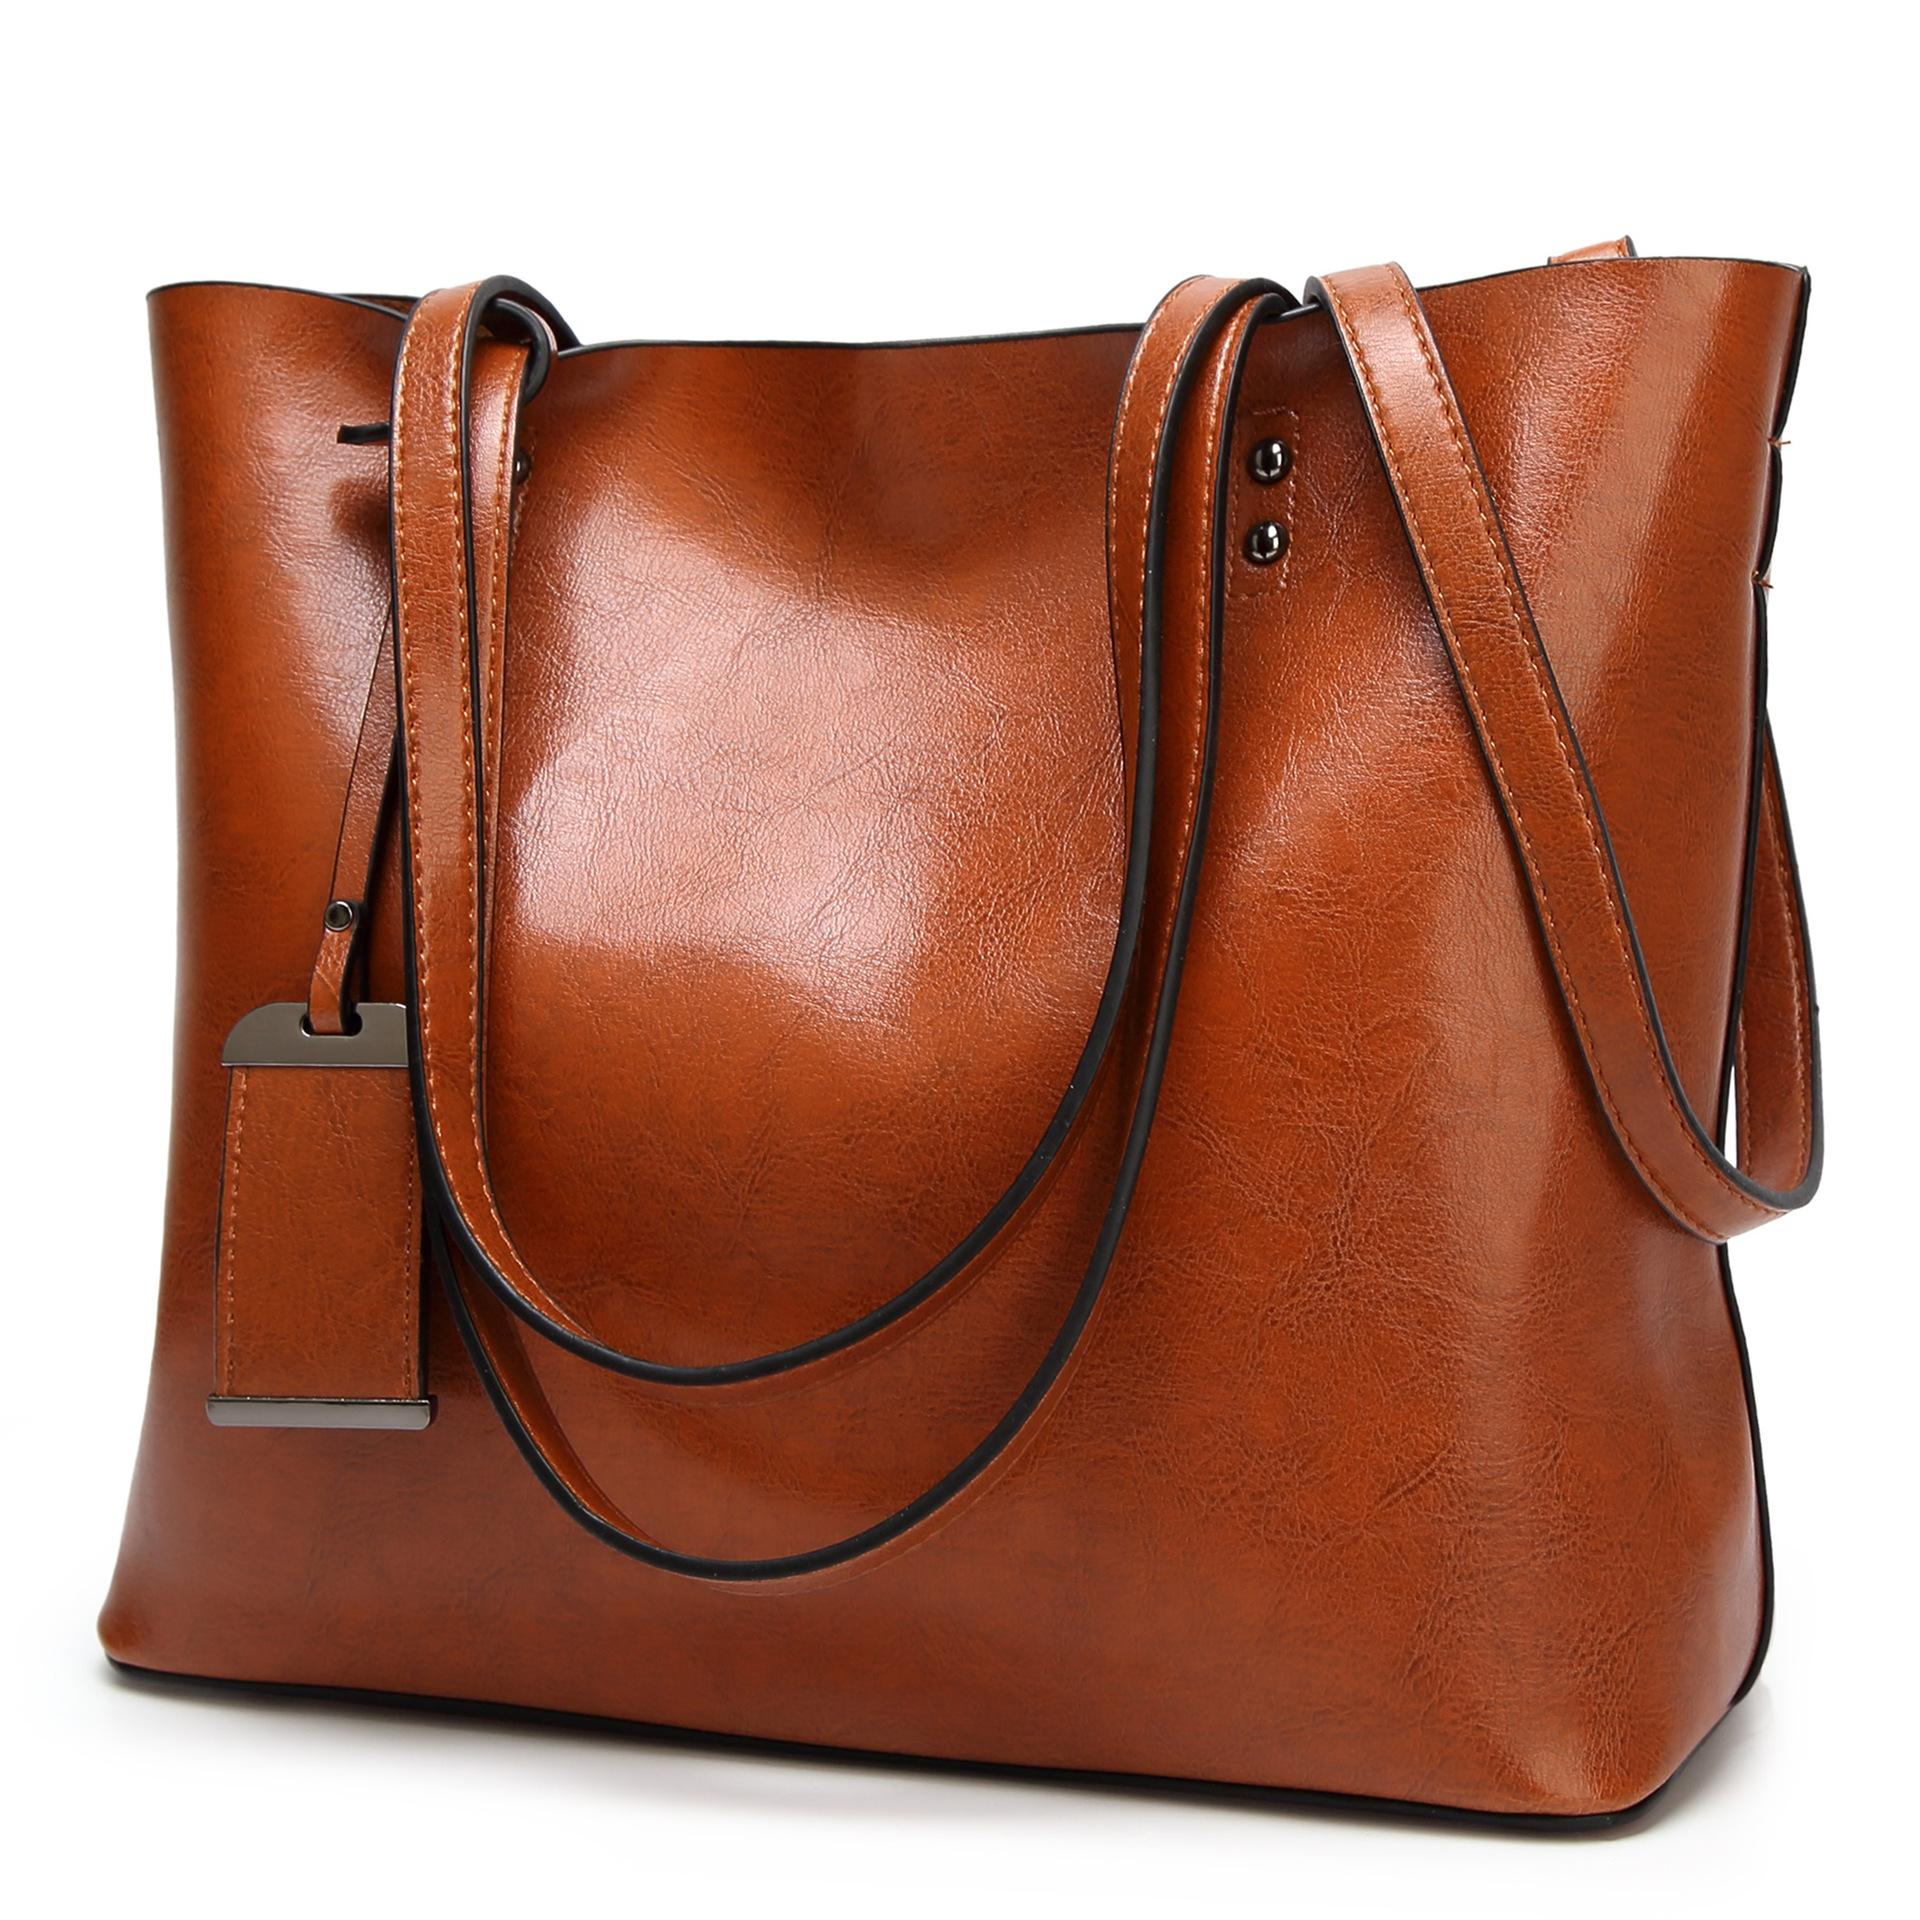 24d954c645e Casual Retro Oil Wax Leather Tote Bags Women Pu Leather Handbags High  Capacity Message Bags Female High Capacity Shoulder Handbag Brands Cheap  Bags From ...